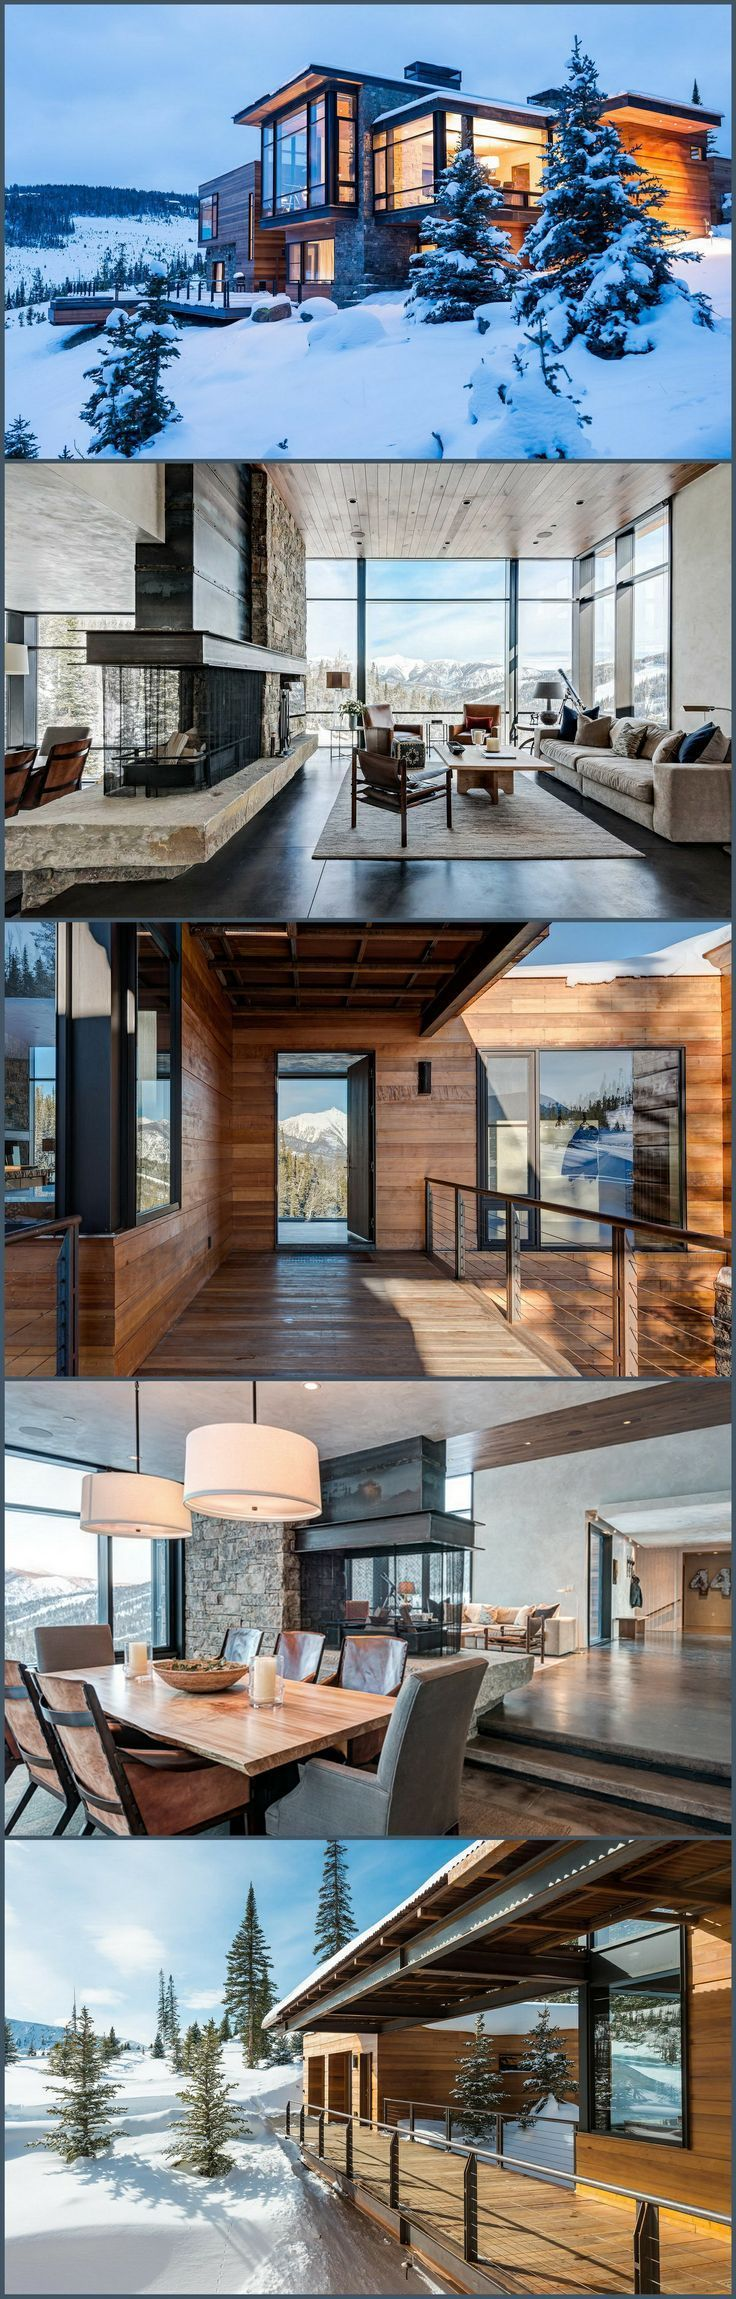 Modern Montana Mountain Home - Style Estate ==> http://blog.styleestate.com/style-estate-blog/modern-montana-mountain-home.html